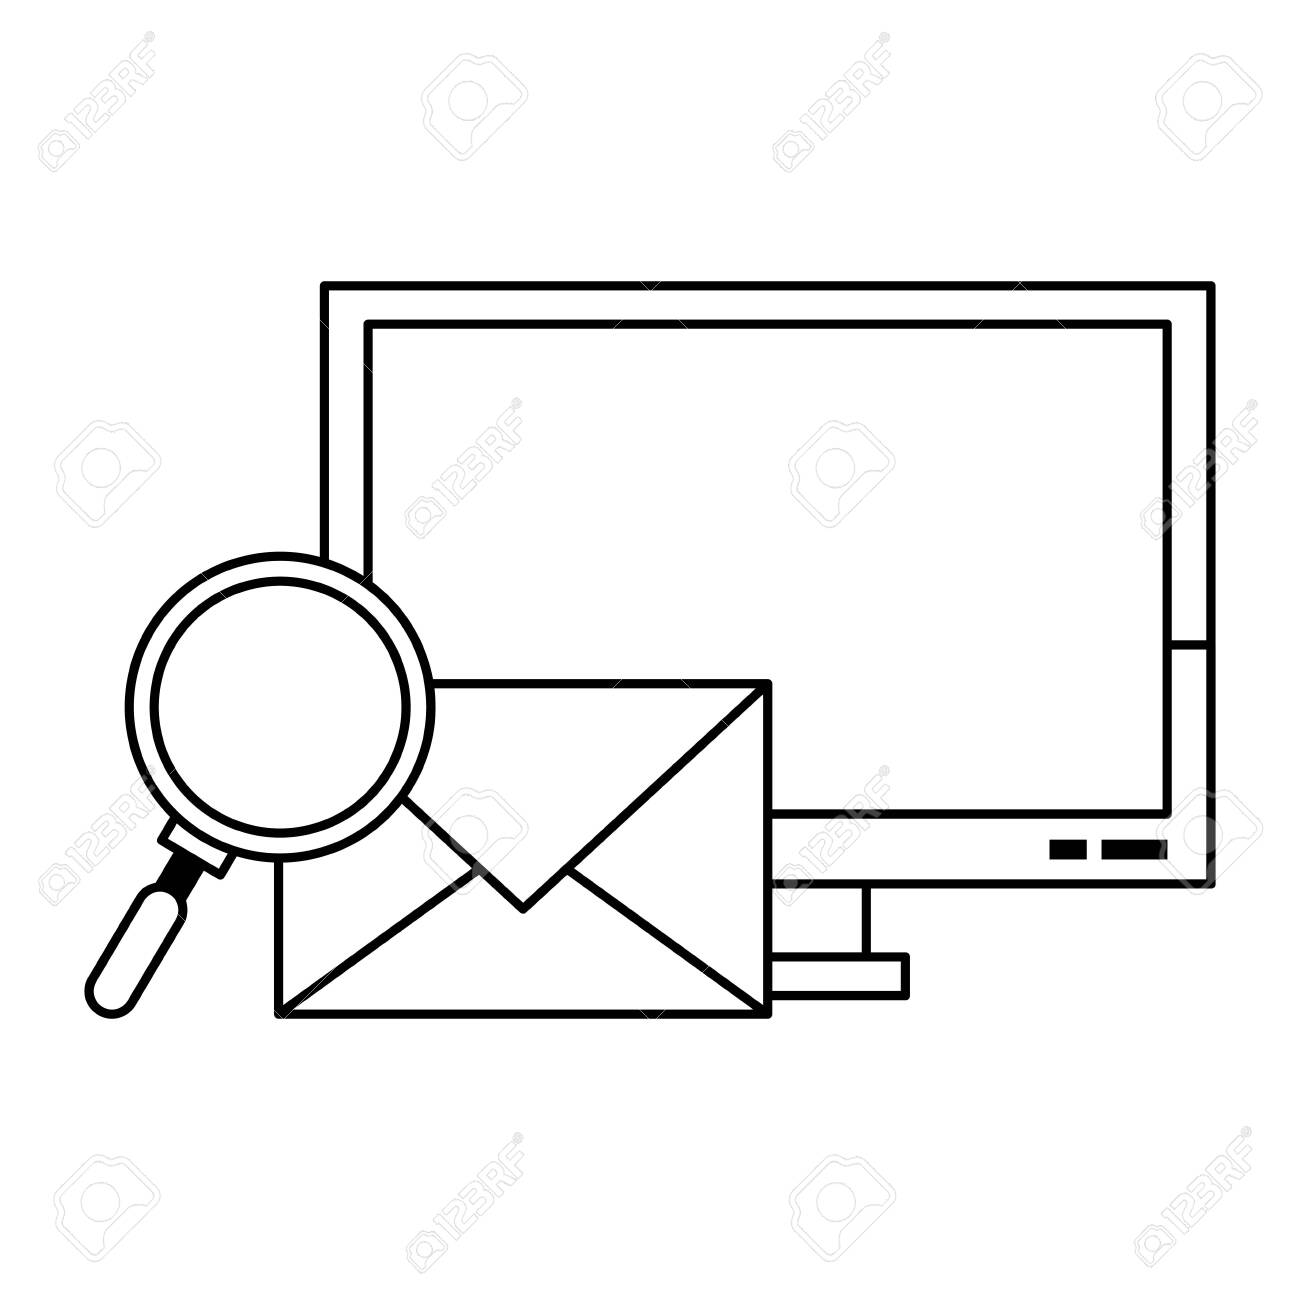 Computer email search business correspondance vector illustration graphic design - 125980294